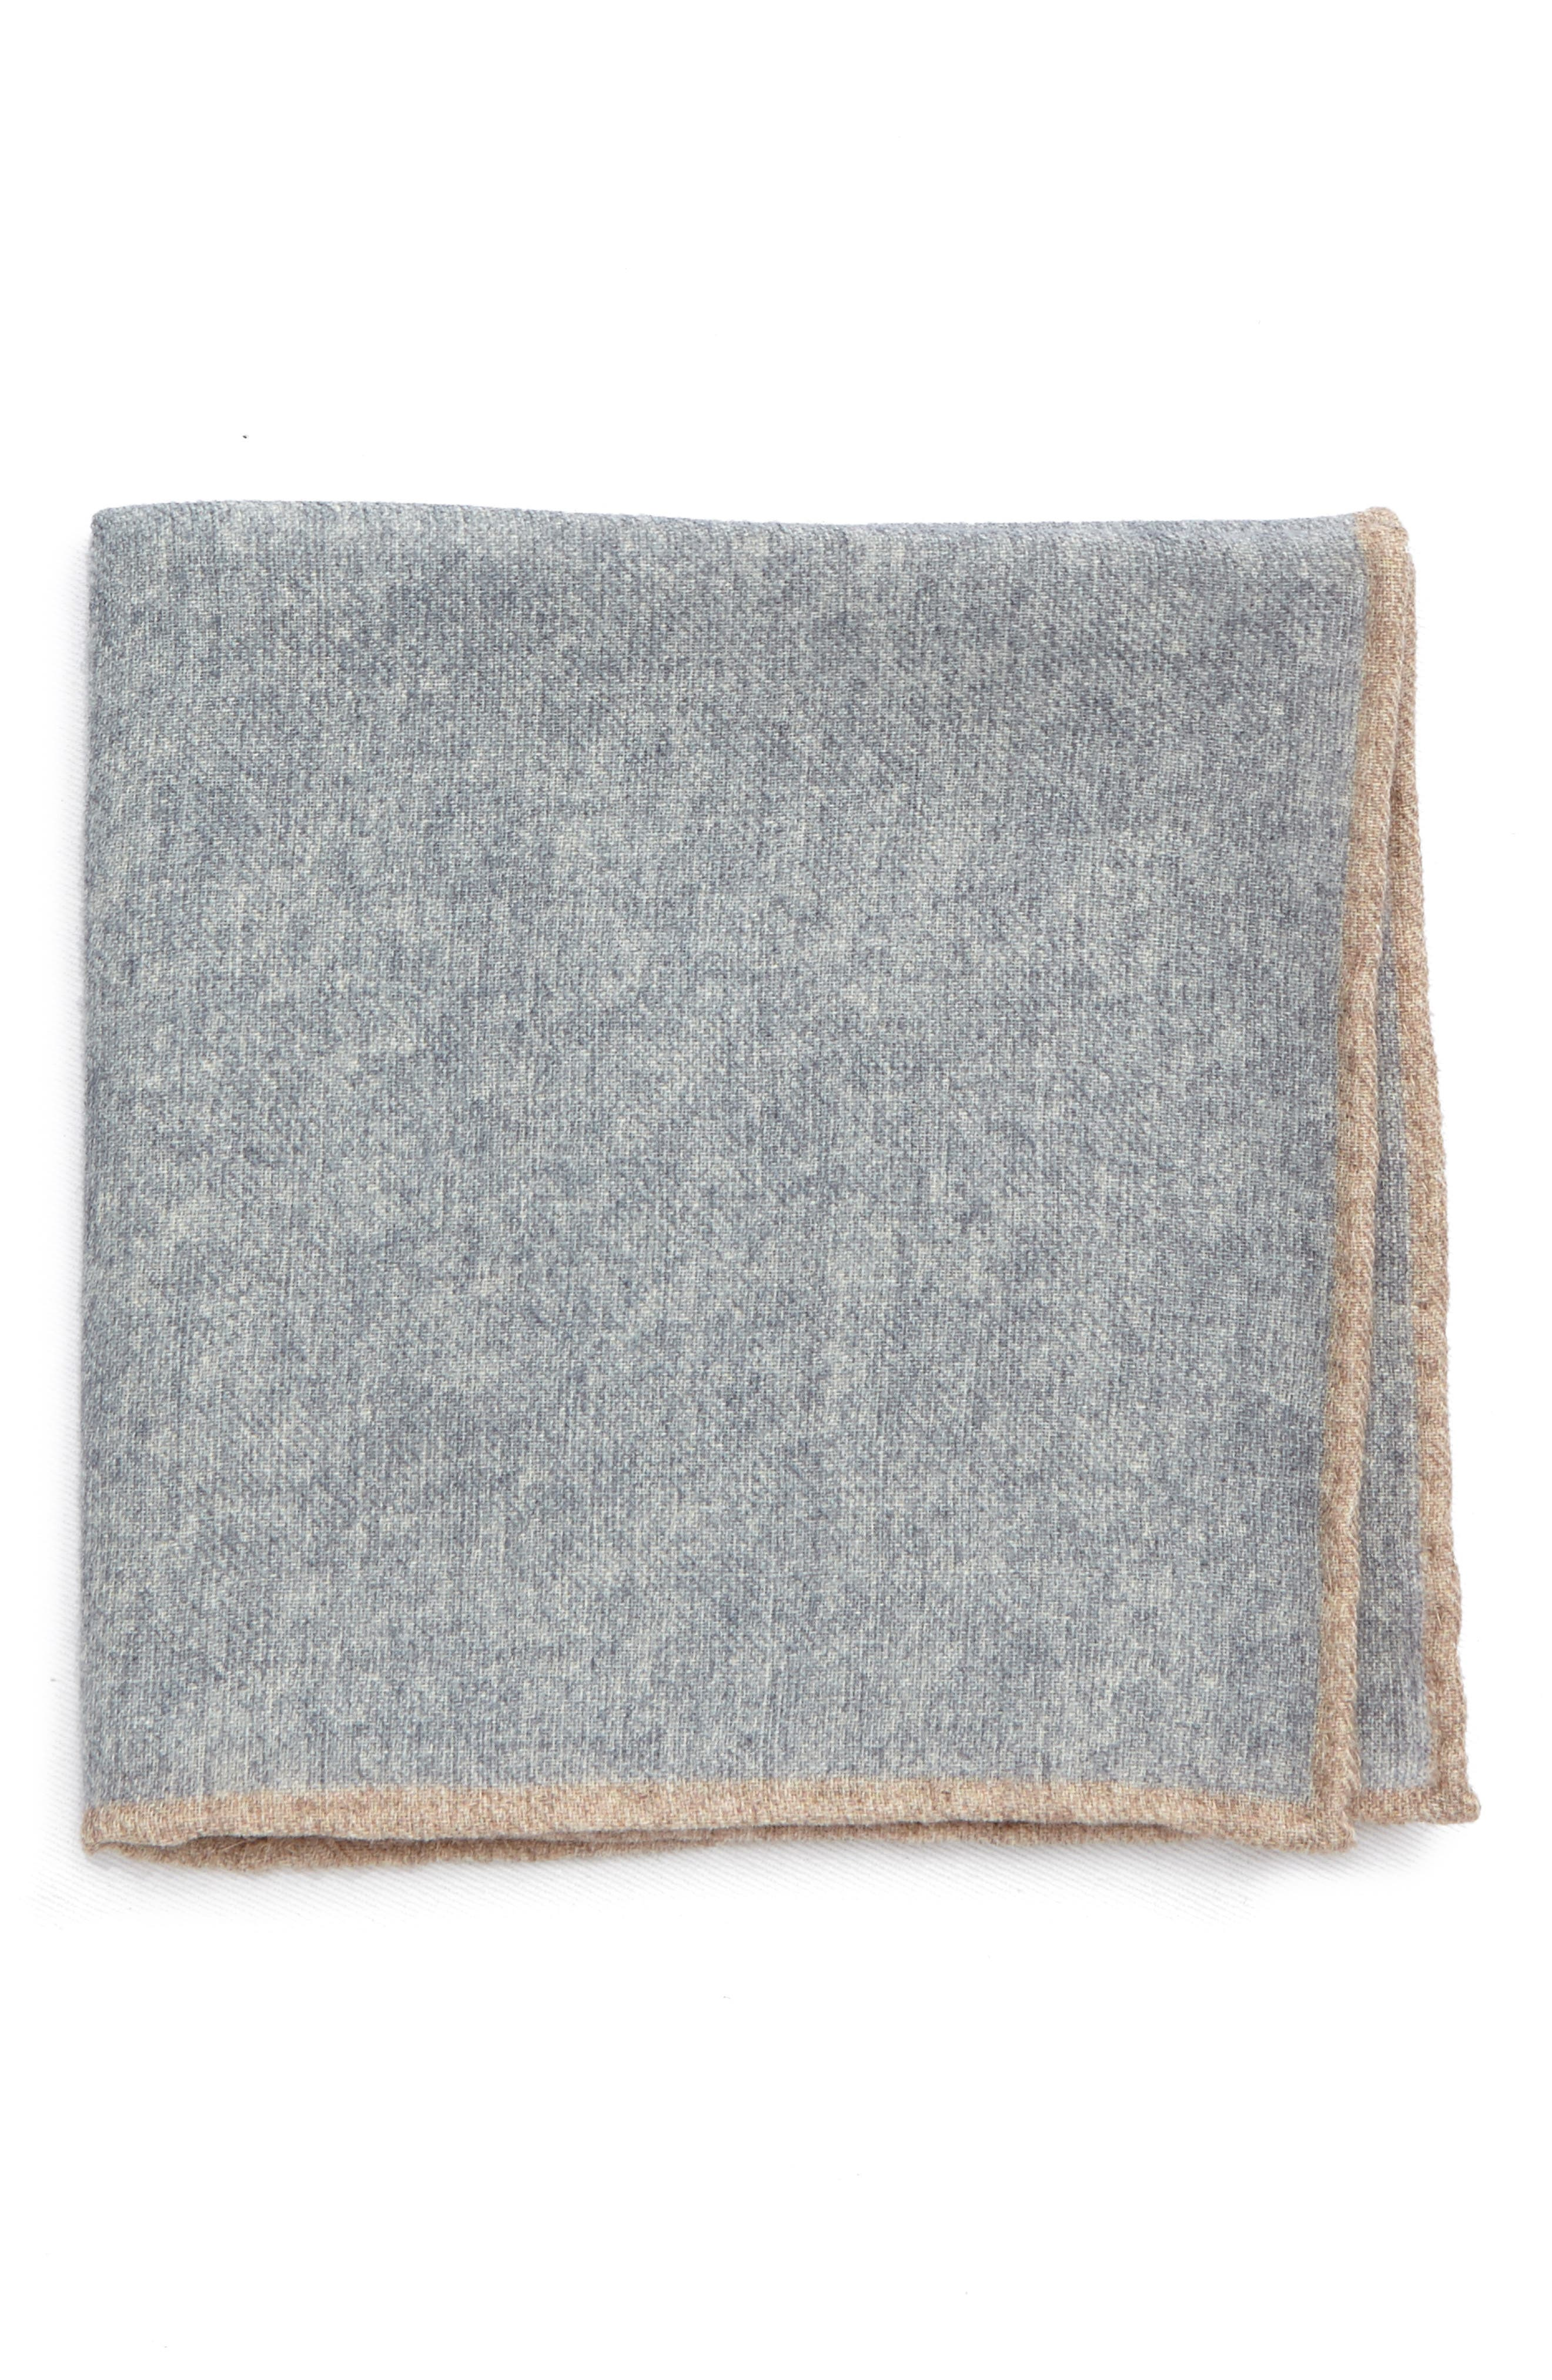 Flannel Wool Pocket Square,                         Main,                         color,